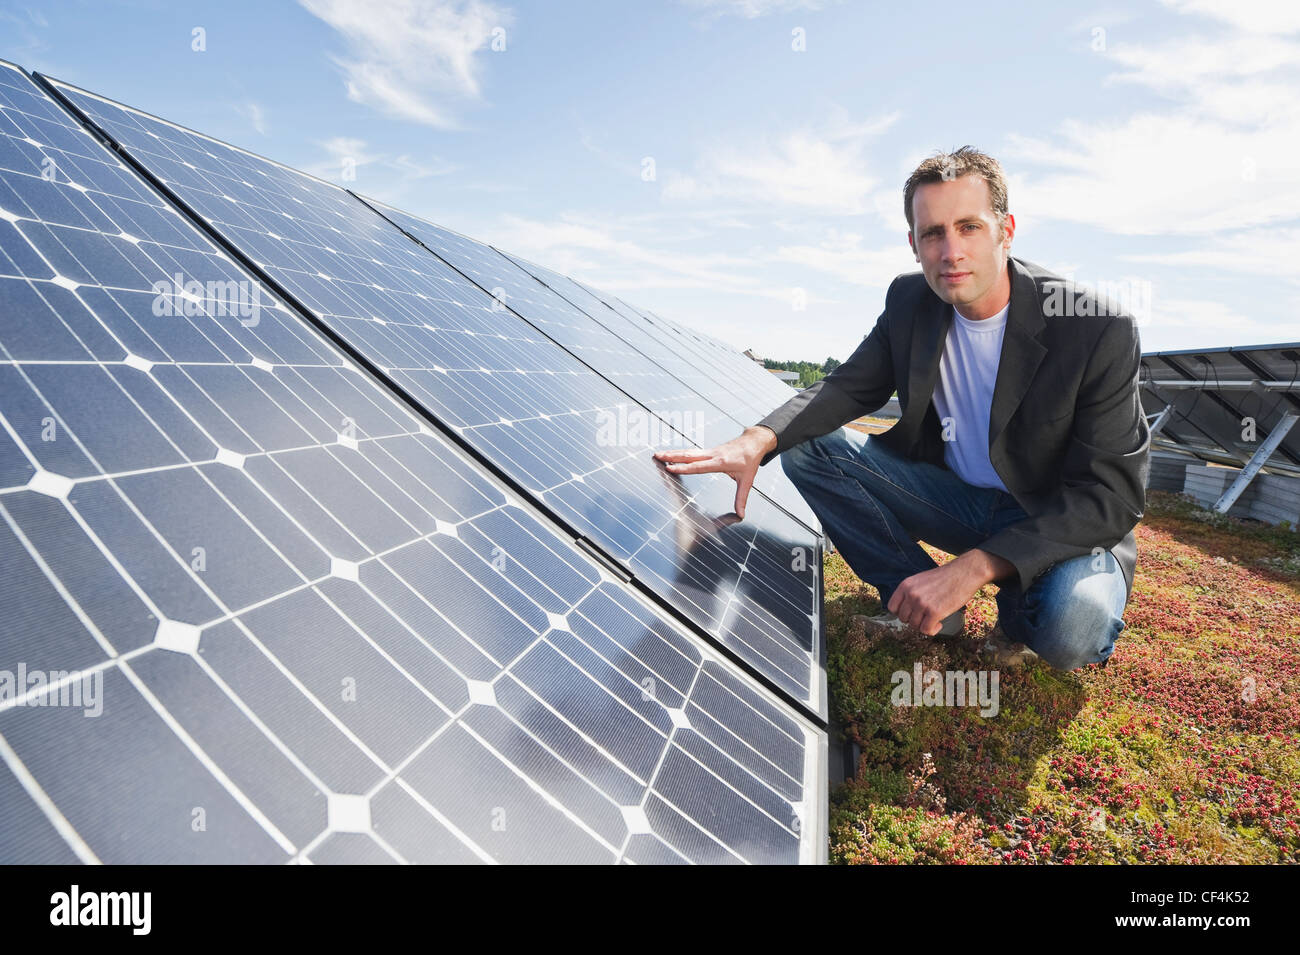 Germany, Munich, Man touching solar panel in solar plant, smiling, portrait - Stock Image